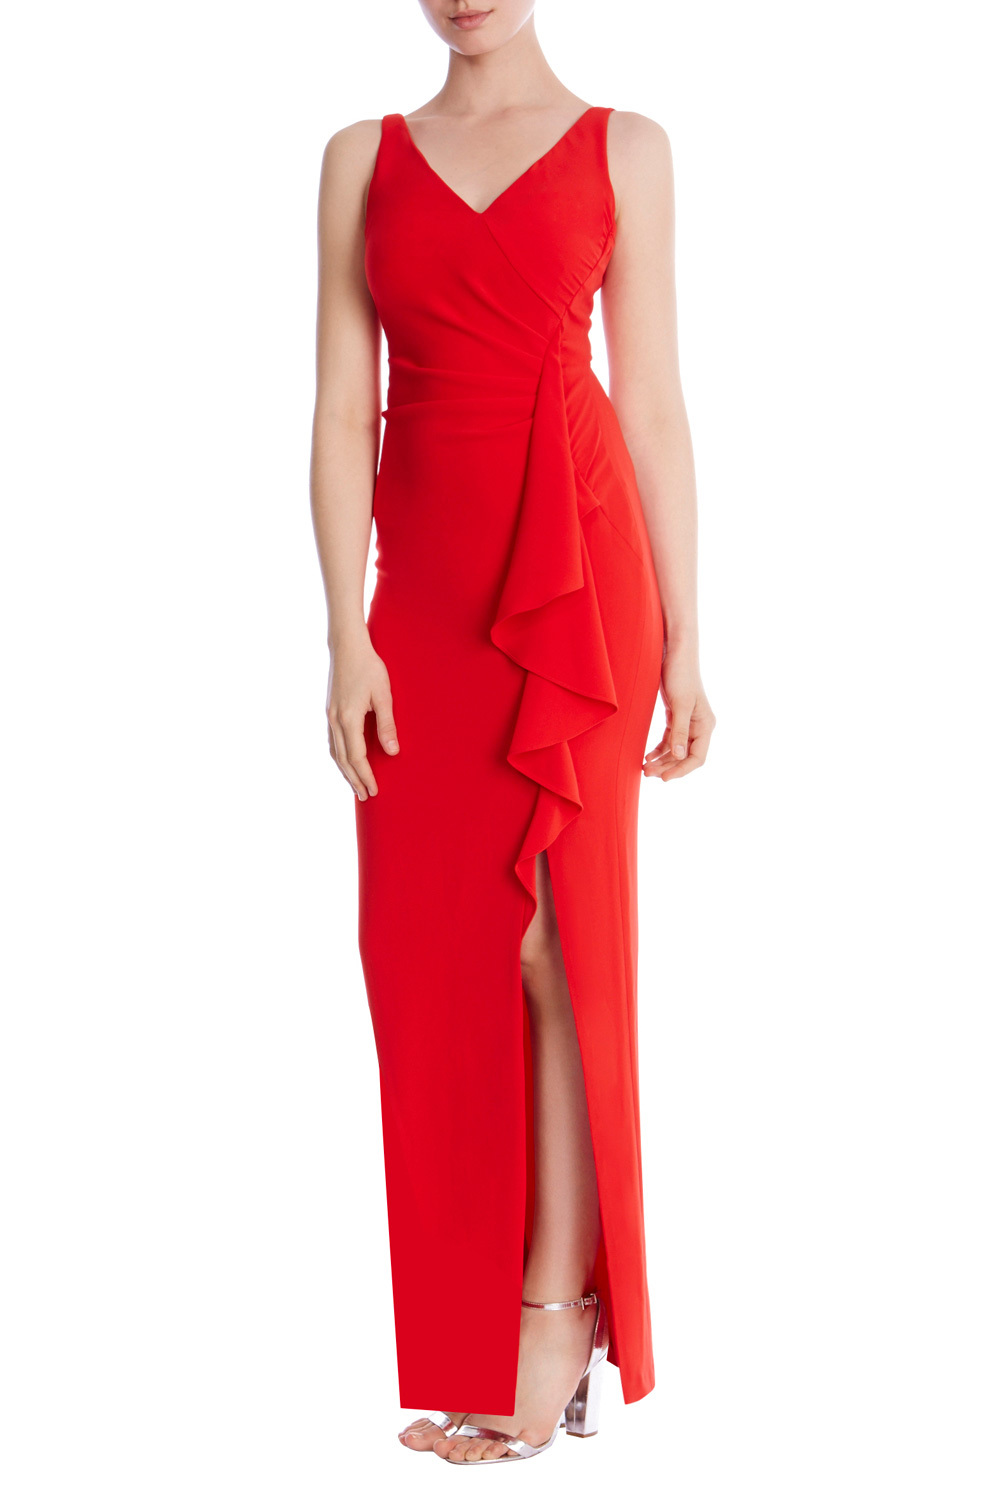 Finary Frill Maxi Dress Sb - neckline: v-neck; pattern: plain; sleeve style: sleeveless; style: maxi dress; predominant colour: true red; occasions: evening; length: floor length; fit: body skimming; hip detail: slits at hip; sleeve length: sleeveless; pattern type: fabric; texture group: jersey - stretchy/drapey; fibres: viscose/rayon - mix; season: s/s 2016